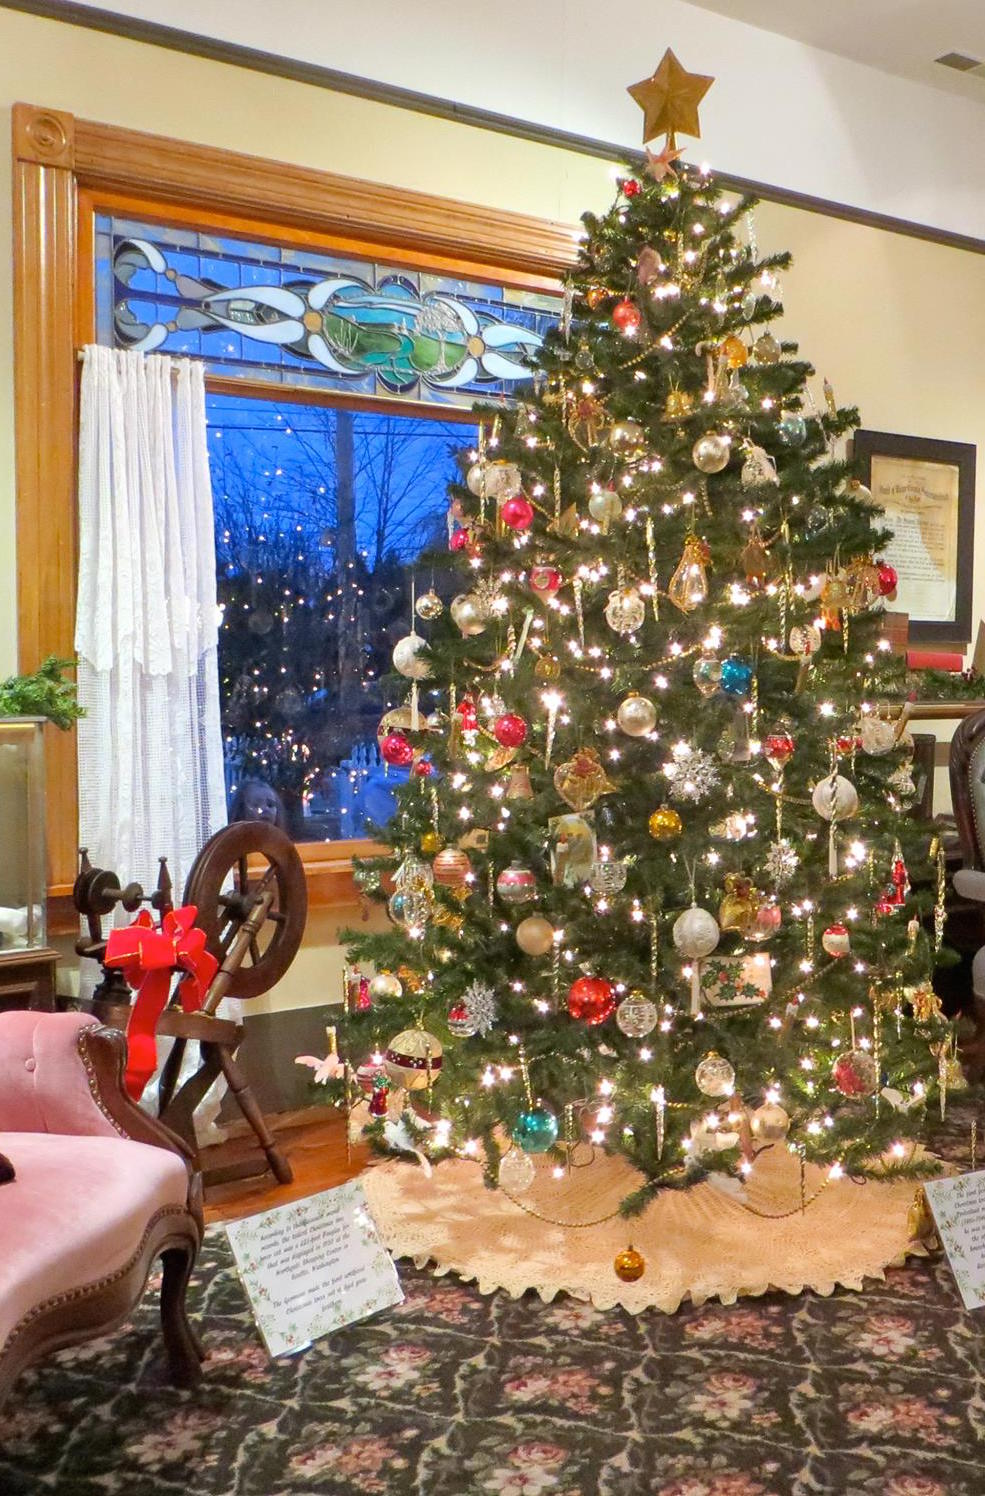 White house christmas ornaments historical society - Historical House Christmas Tree Source Huron Township Historical Society Facebook Page